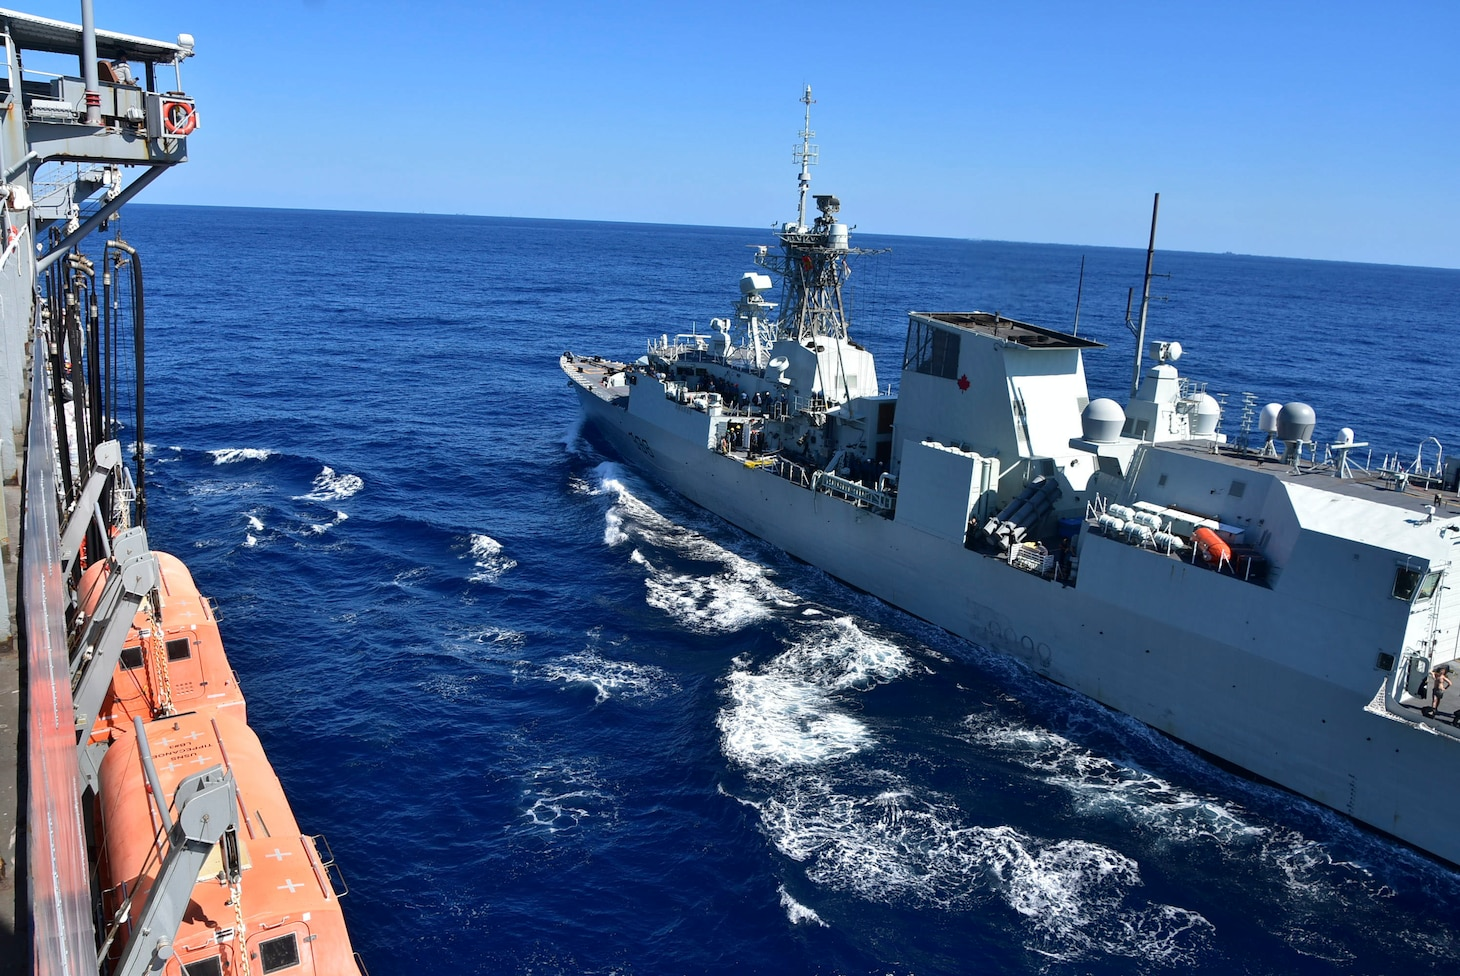 PHILIPPINE SEA (Oct. 25, 2020) – The U.S. Navy Military Sealift Command Henry J. Kaiser-class fleet replenishment oiler USNS Tippecanoe (T-AO 199), left, steams alongside the Royal Canadian Navy Halifax-class frigate HMCS Winnipeg (FFH 338) during an underway replenishment prior to participating in Keen Sword. Keen Sword is a joint, bilateral, biennial field-training exercise involving U.S. military and Japan Self-Defense Force personnel, designed to increase combat readiness and interoperability of the Japan-U.S. alliance. (US. Navy photo by Christopher Bosch)